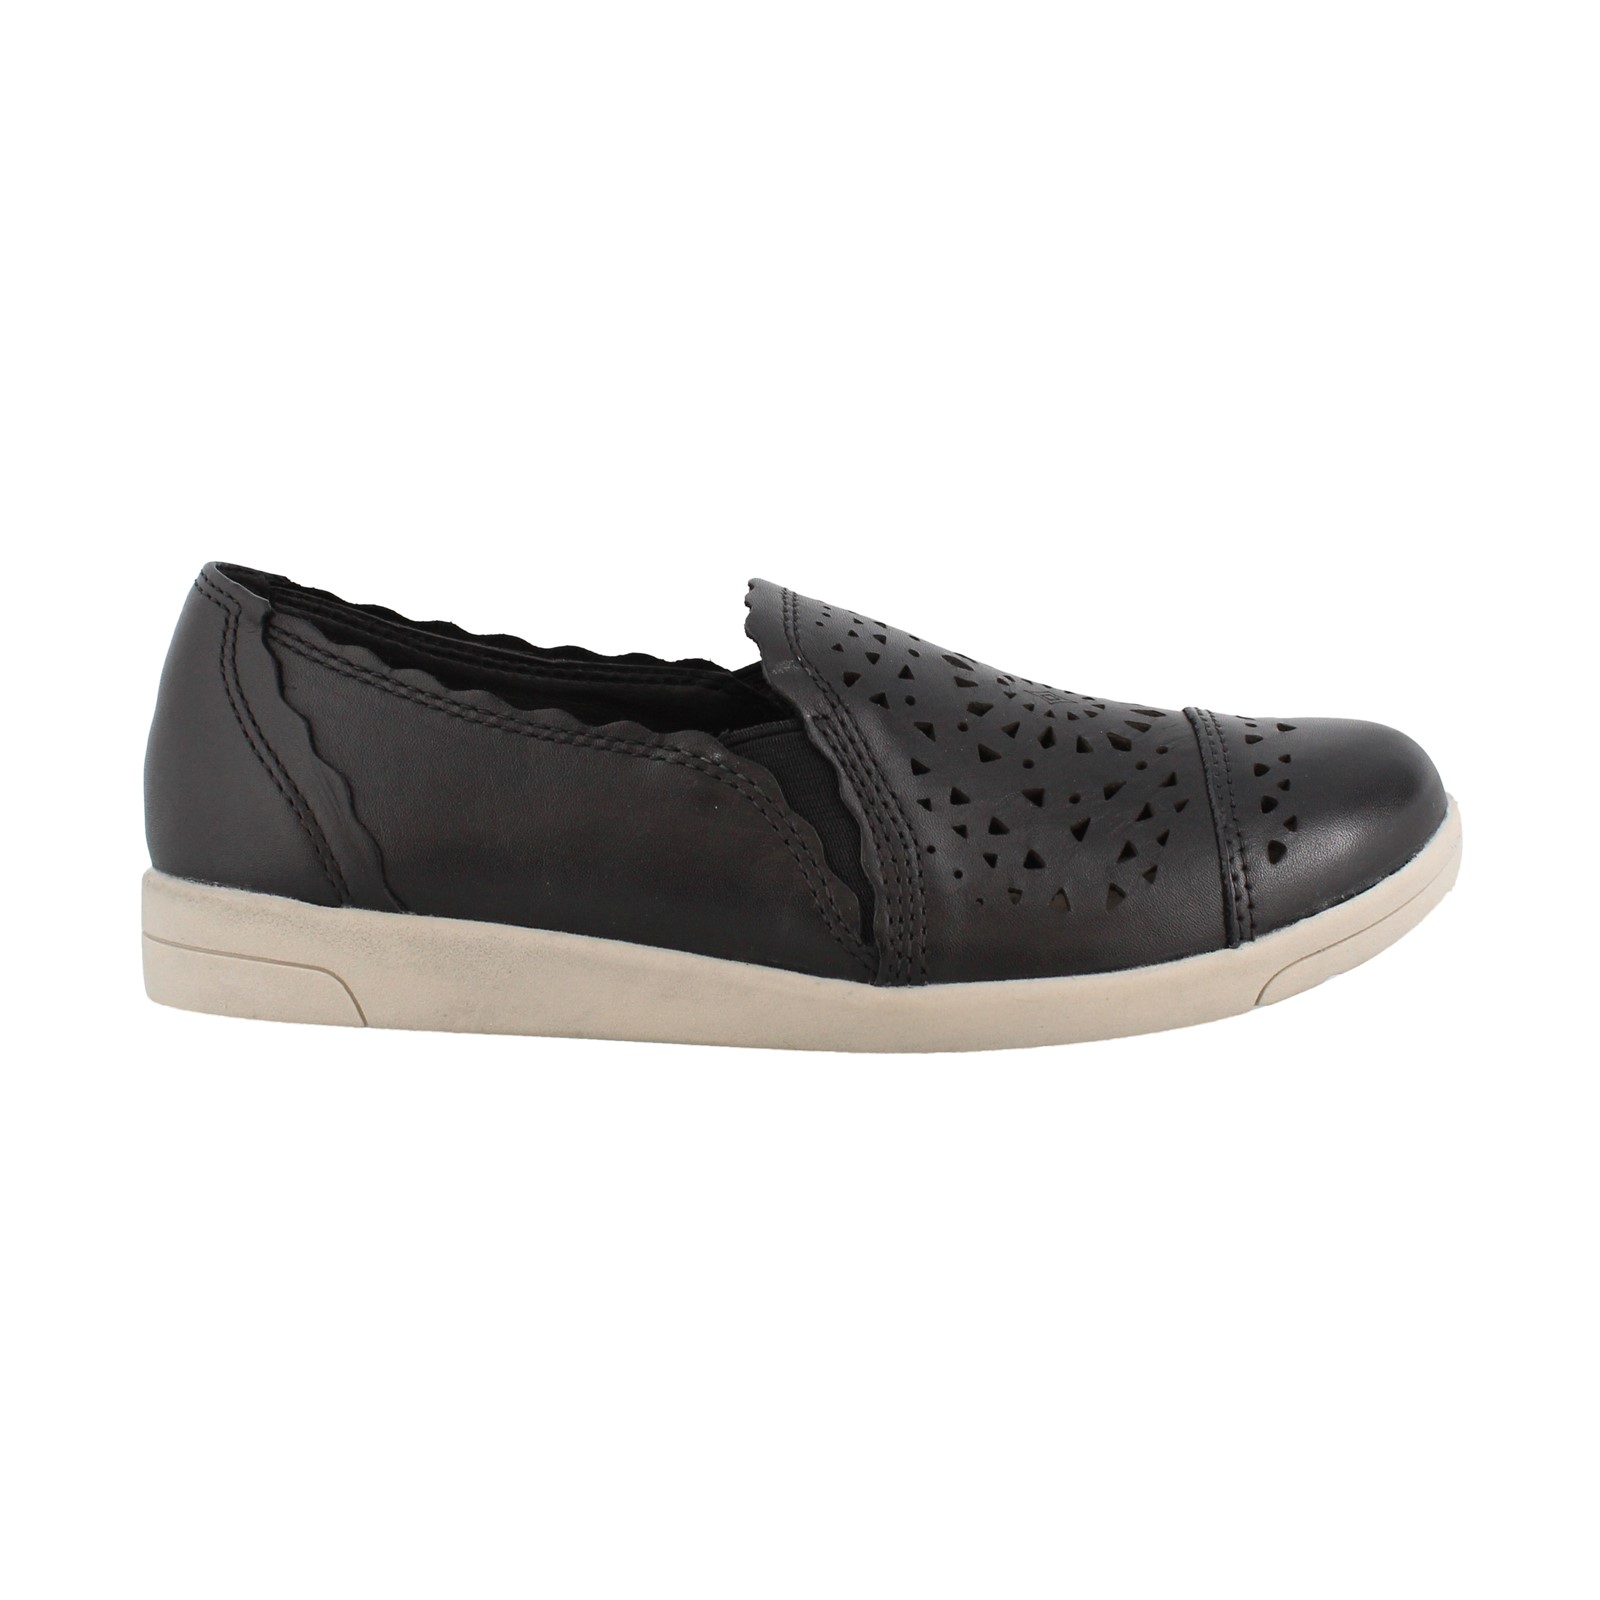 Women's Earth Origins, Celeste Slip on Shoes